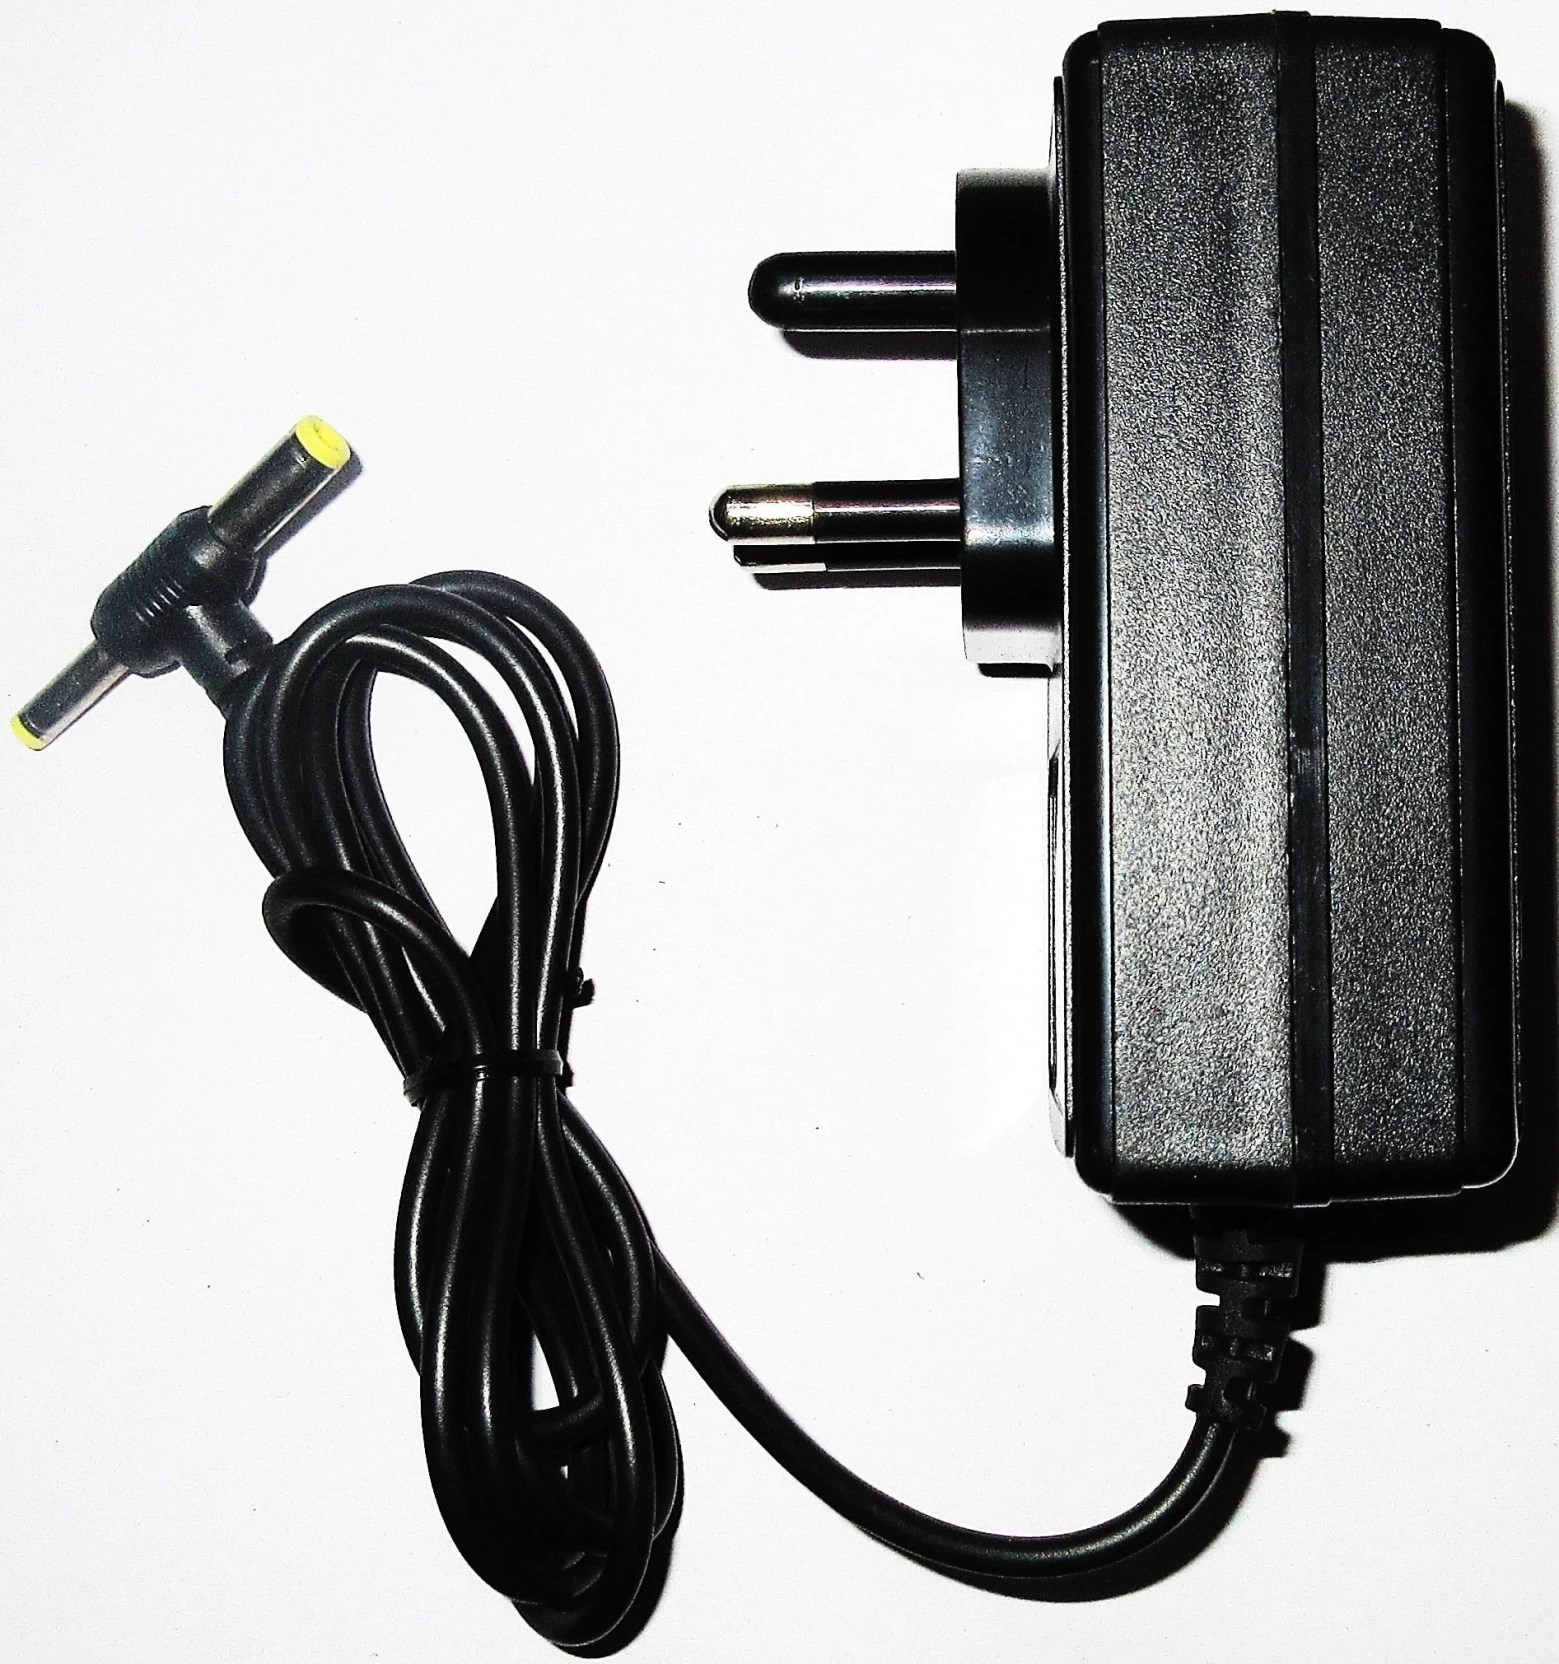 12 Volt Power Adapter Exellent Power Adaptor 12 Volt 2 Amp Charger Ac Input 100 270v Dc 12v 2a Dc Pin Smps Worldwide Adaptor